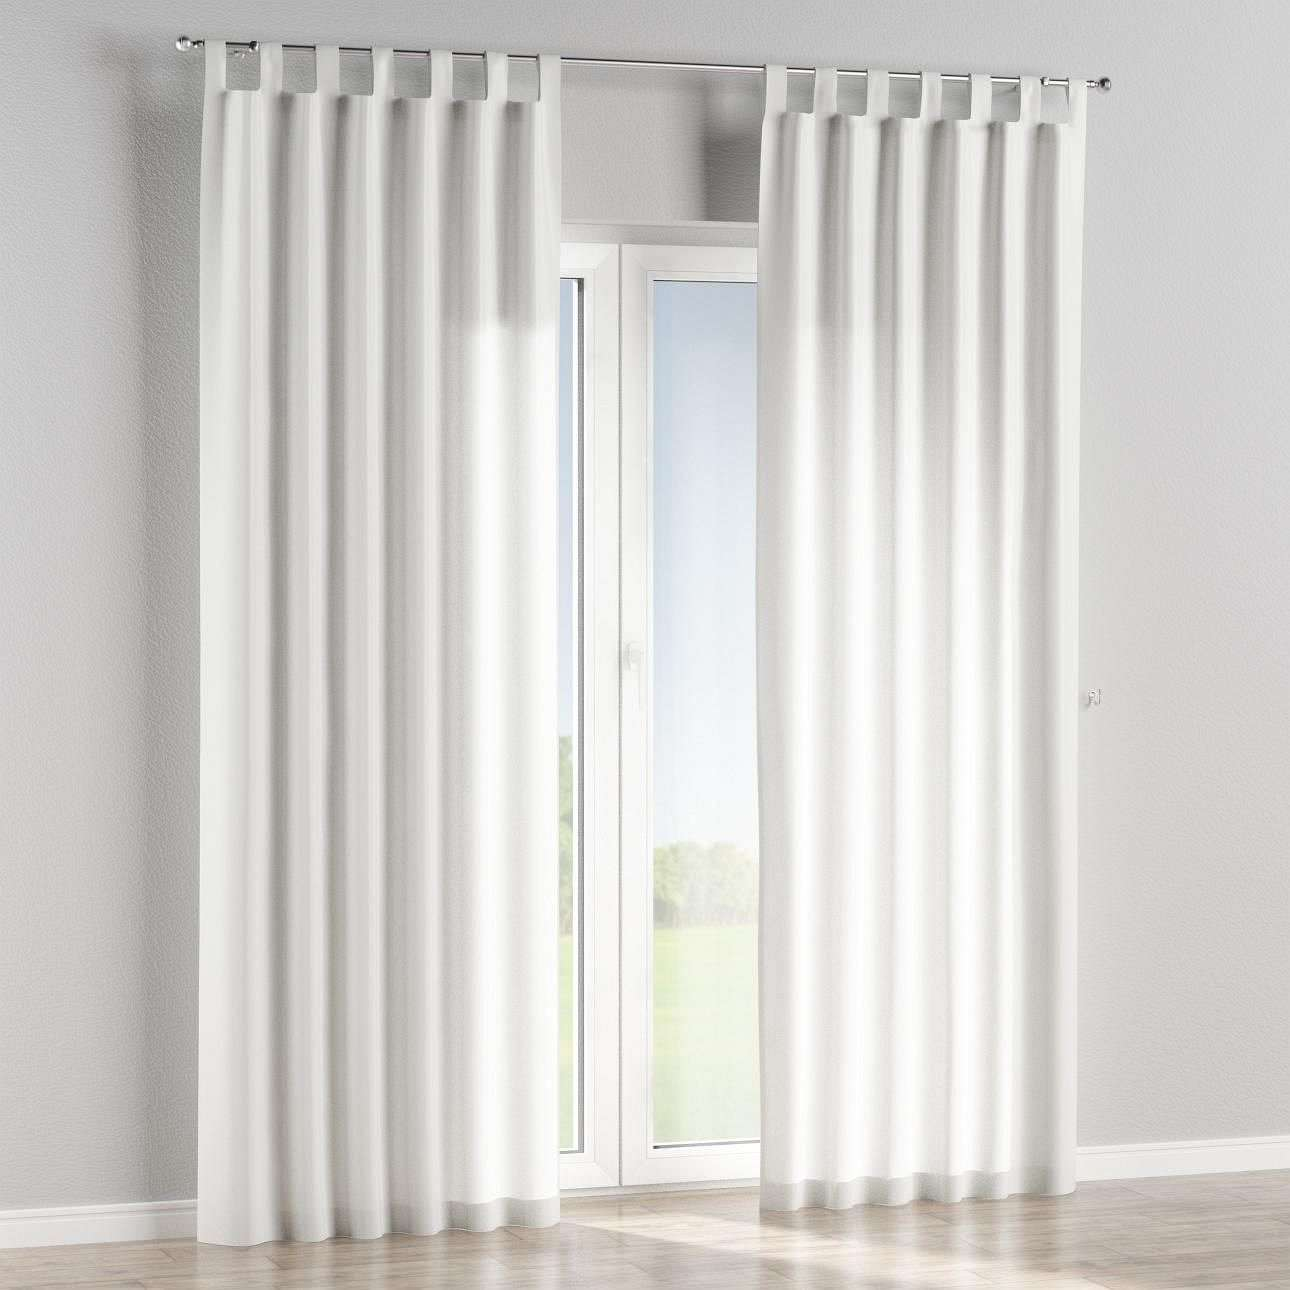 Tab top curtains in collection Christmas , fabric: 630-61